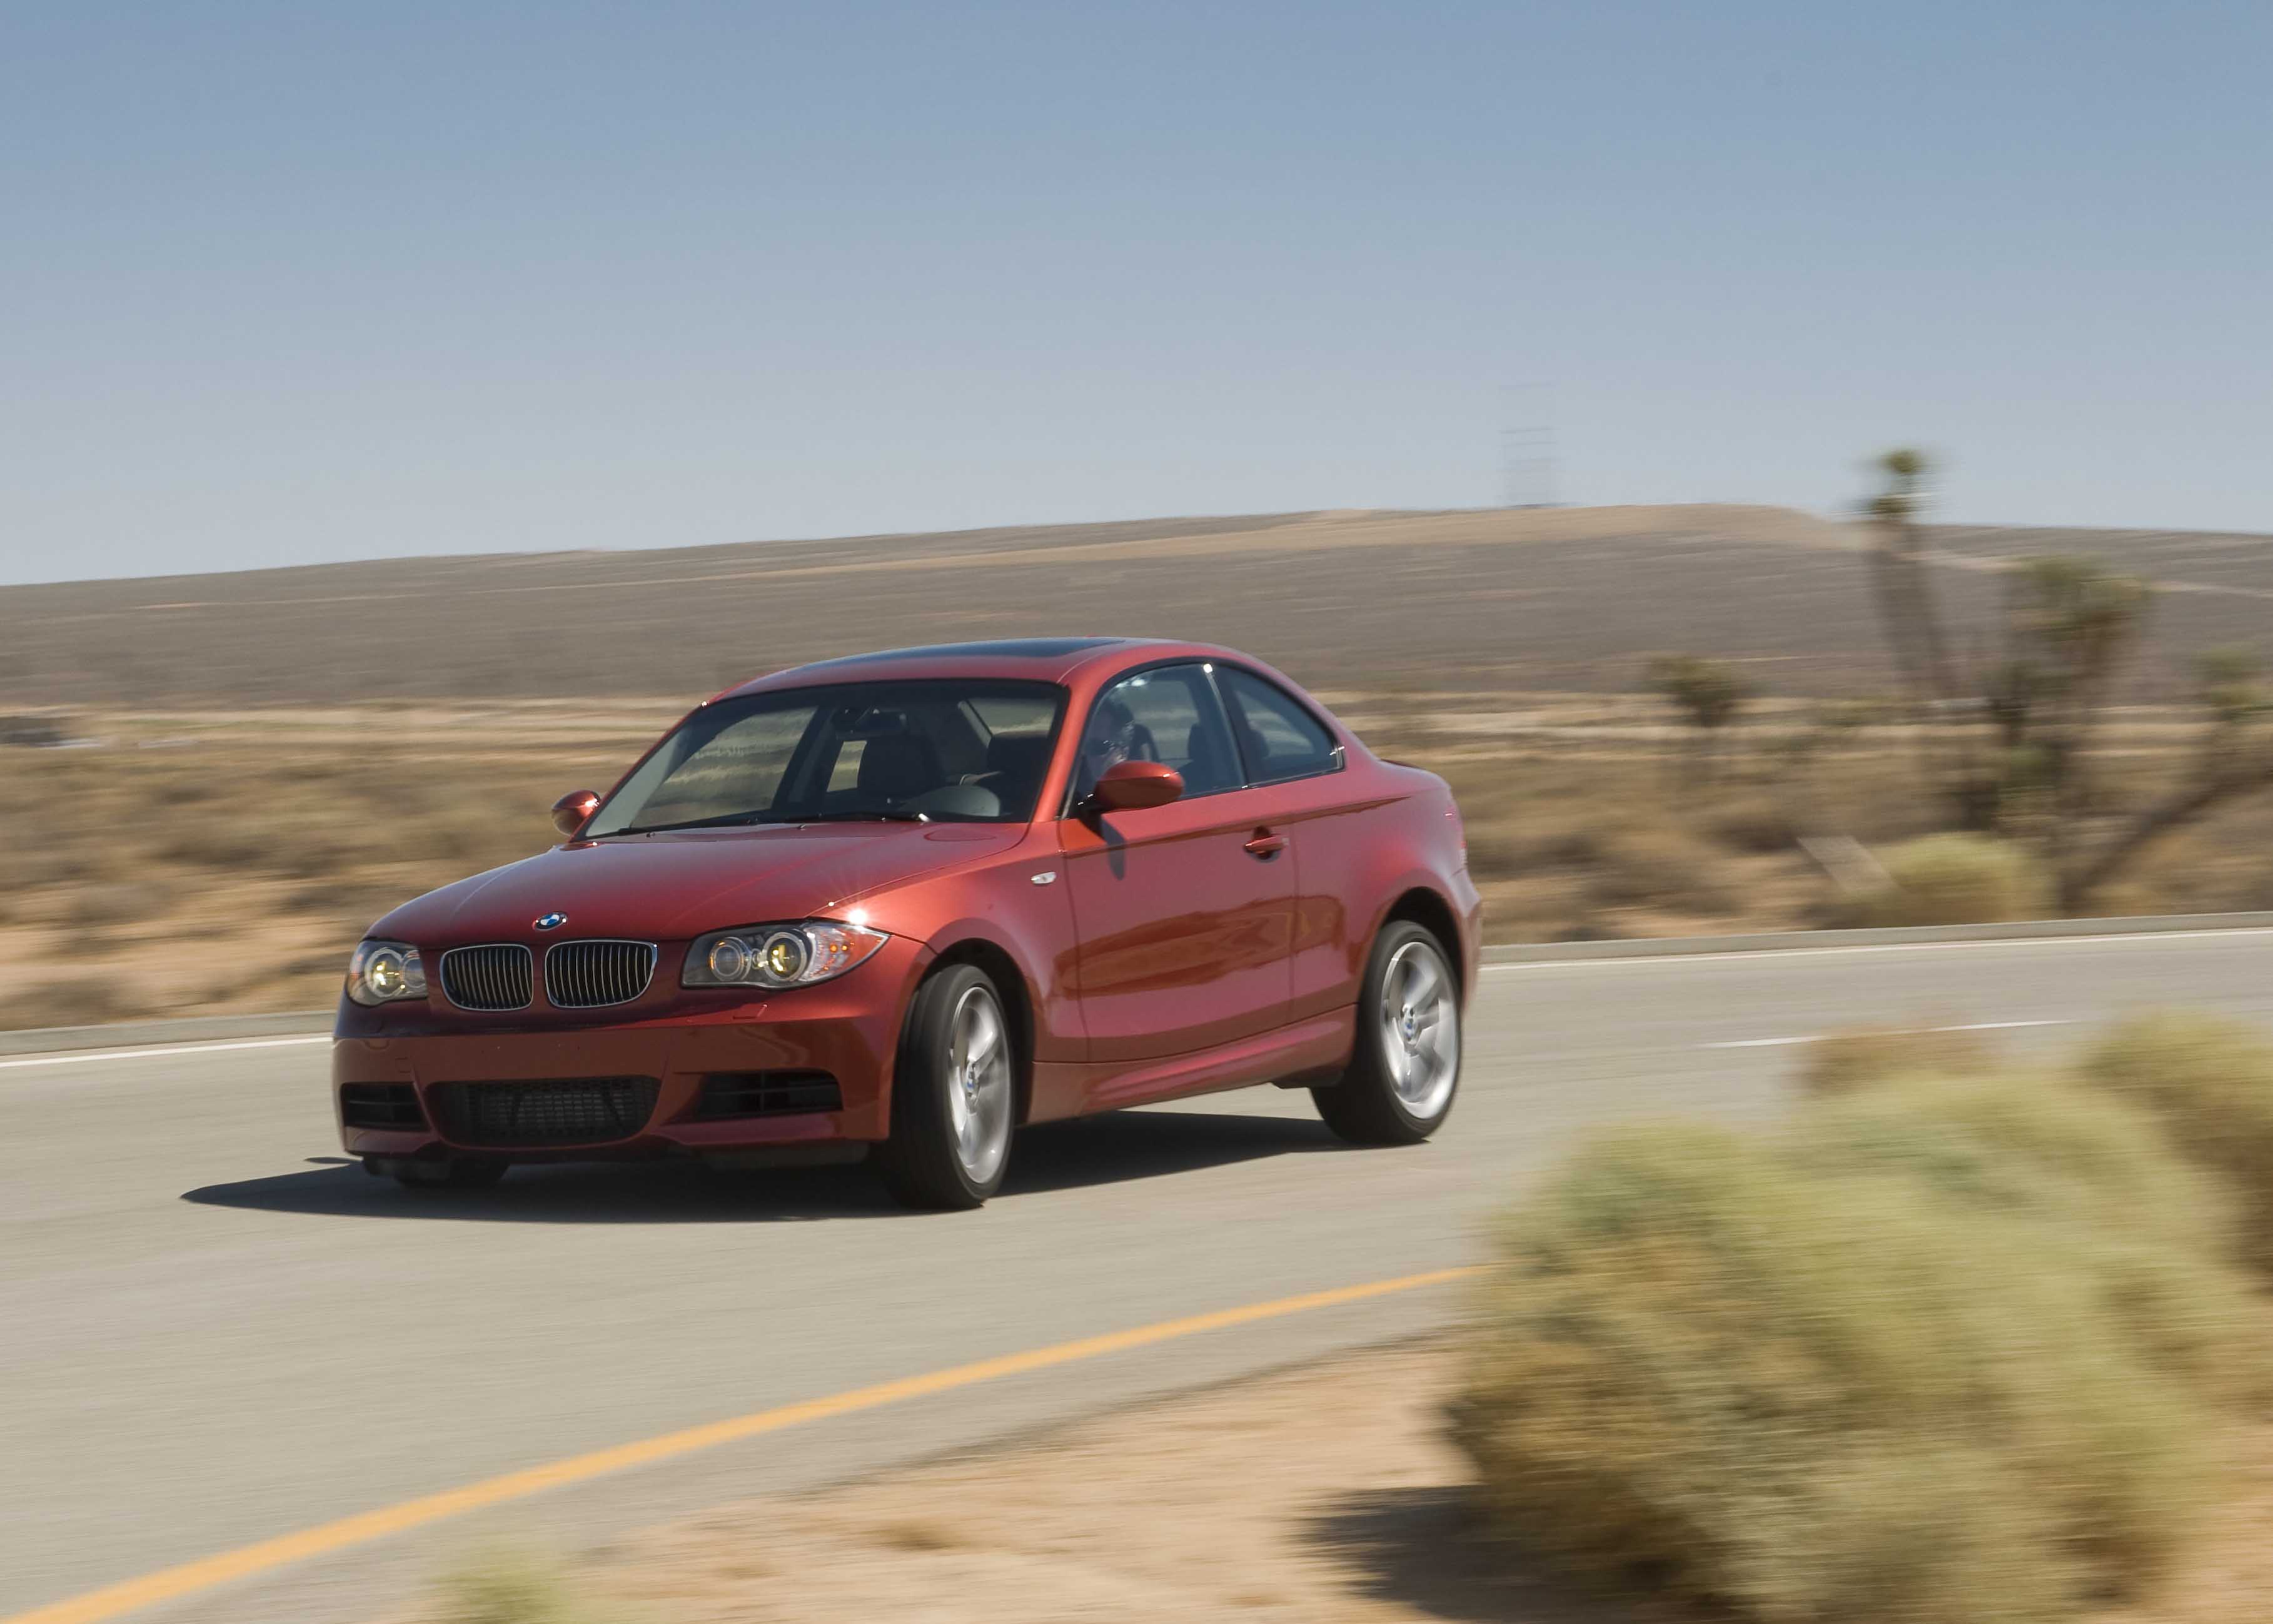 2009 Motor Trend Car of the Year Contender BMW 1 Series Motor Trend